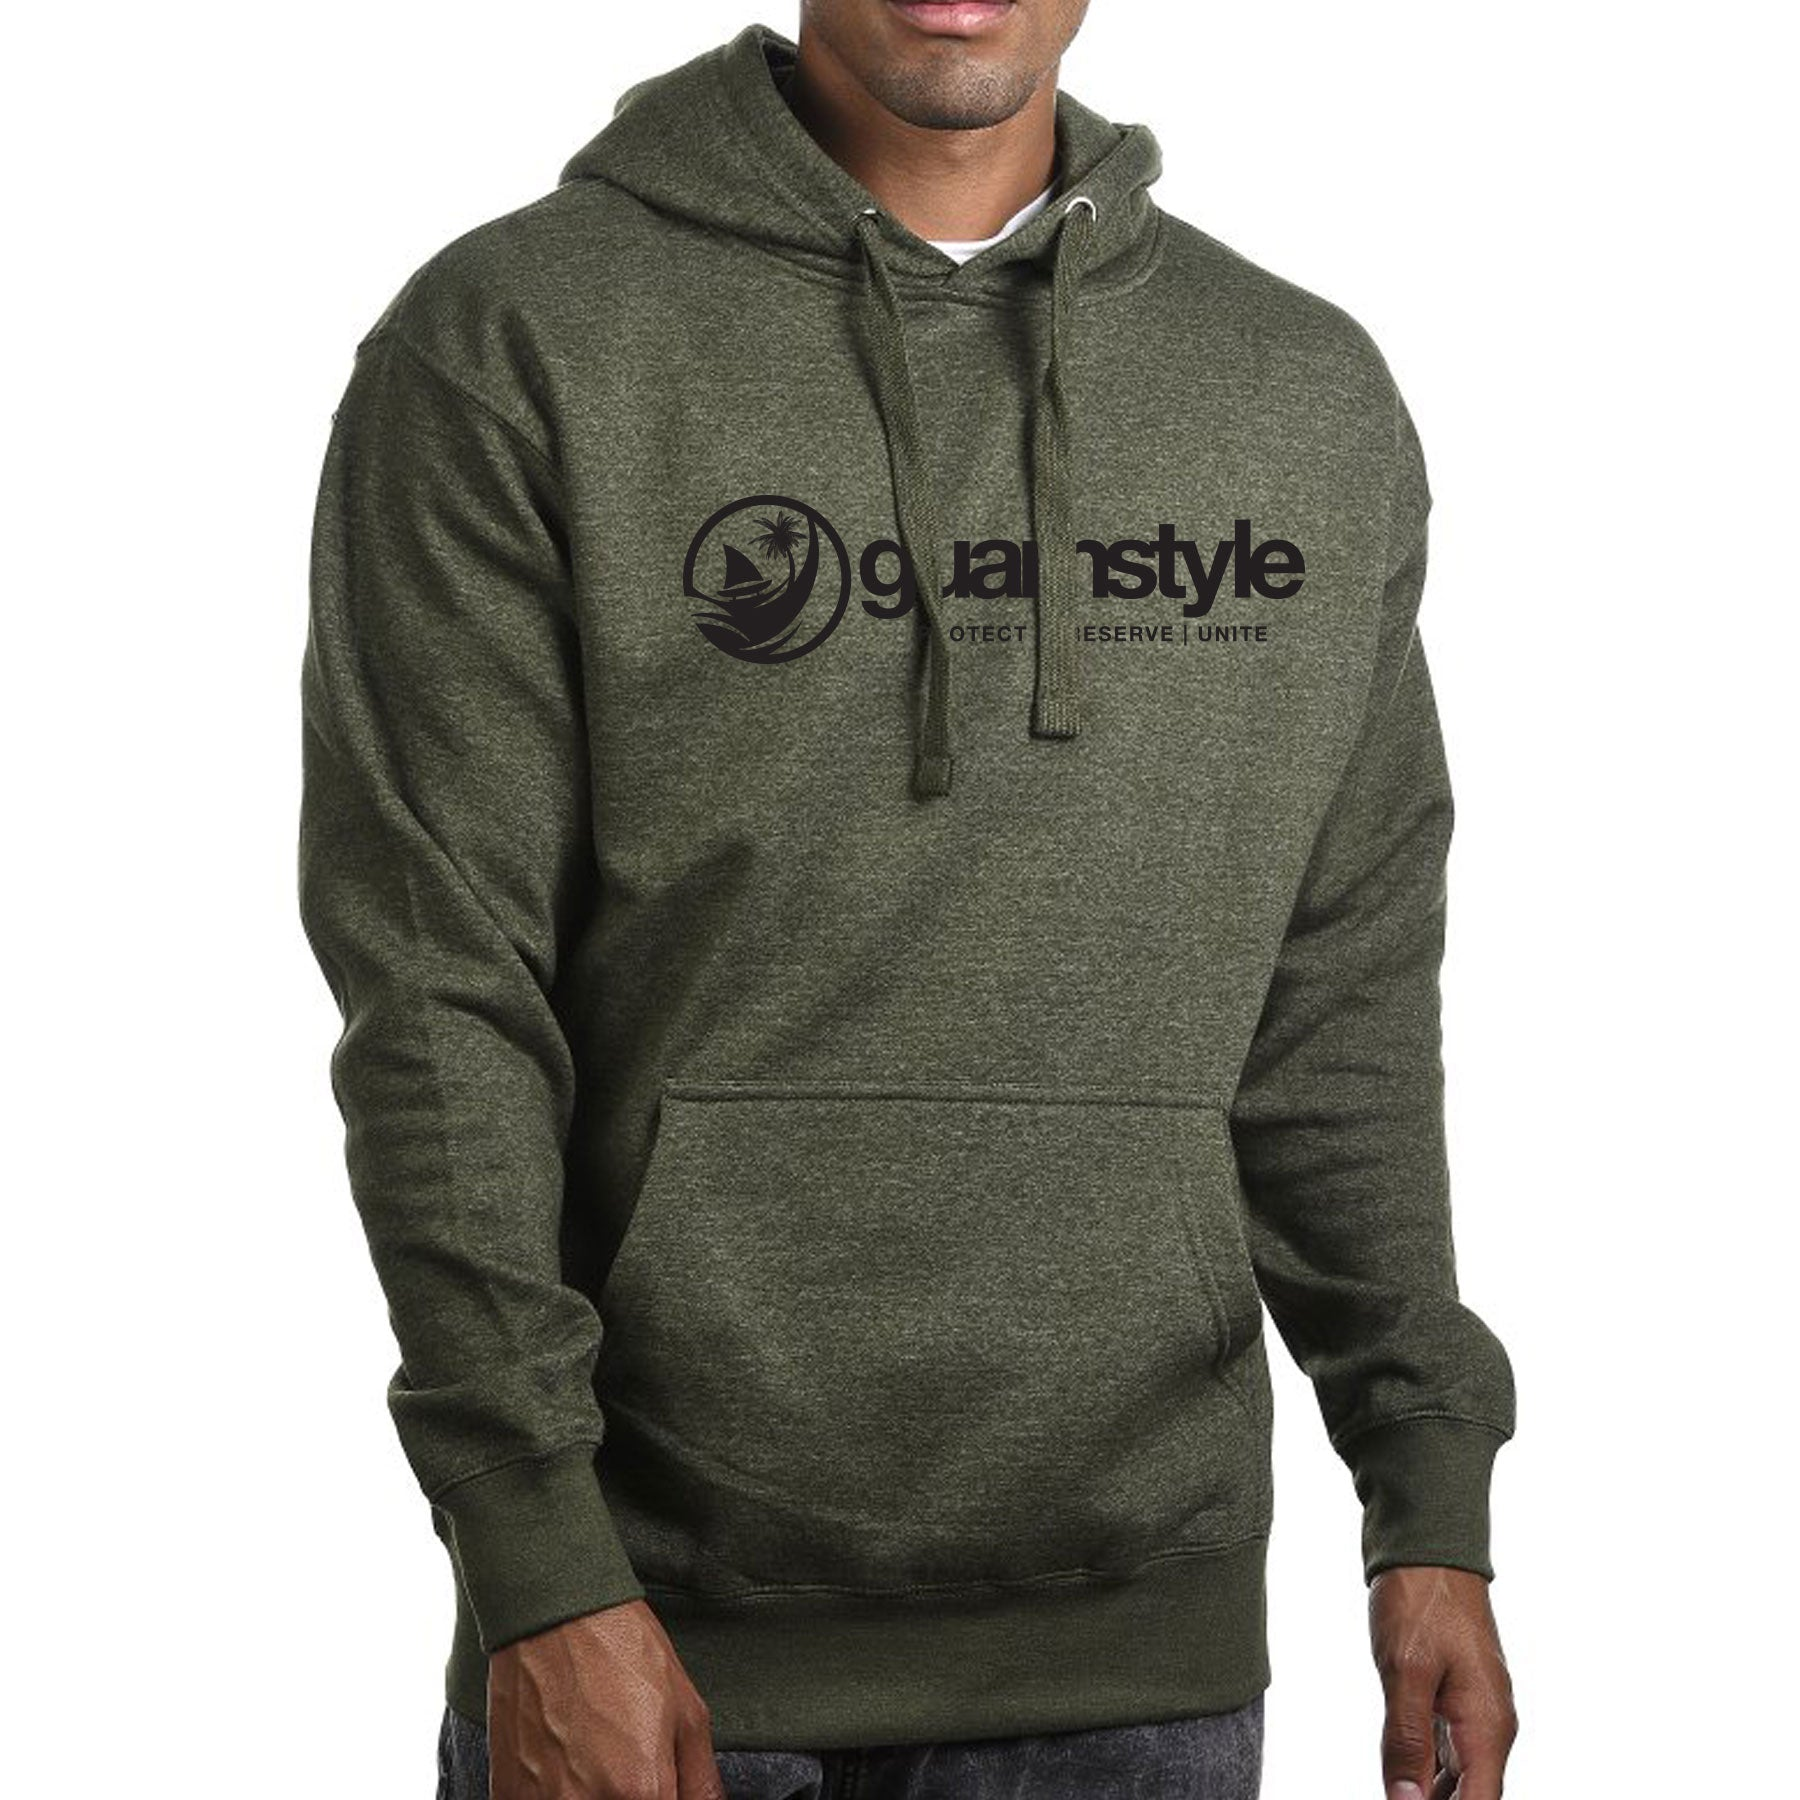 OG Logo Hoodie by Guamstyle